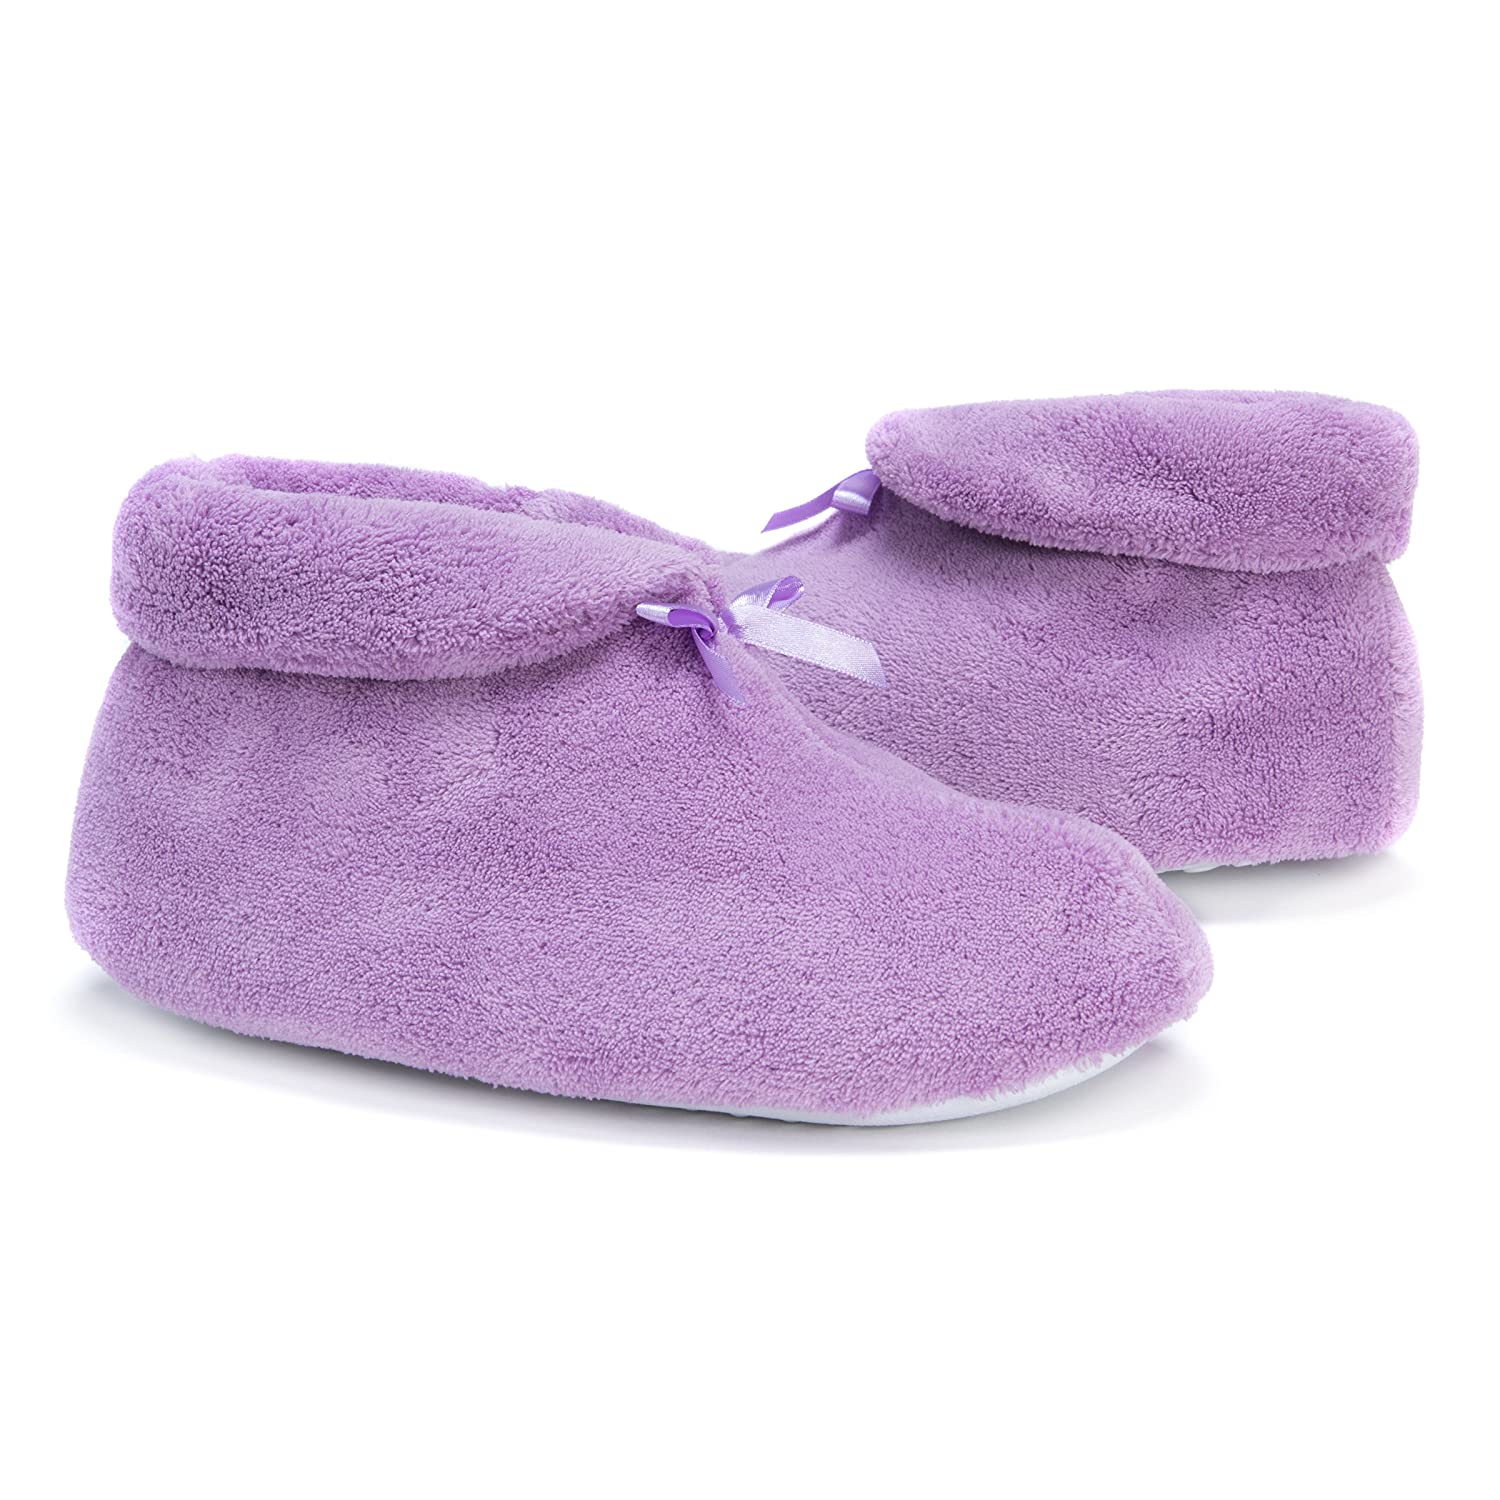 855fb226f9cb3 Amazon.com | Muk LUKS Women's Micro Chenille Slipper Bootie | Slippers